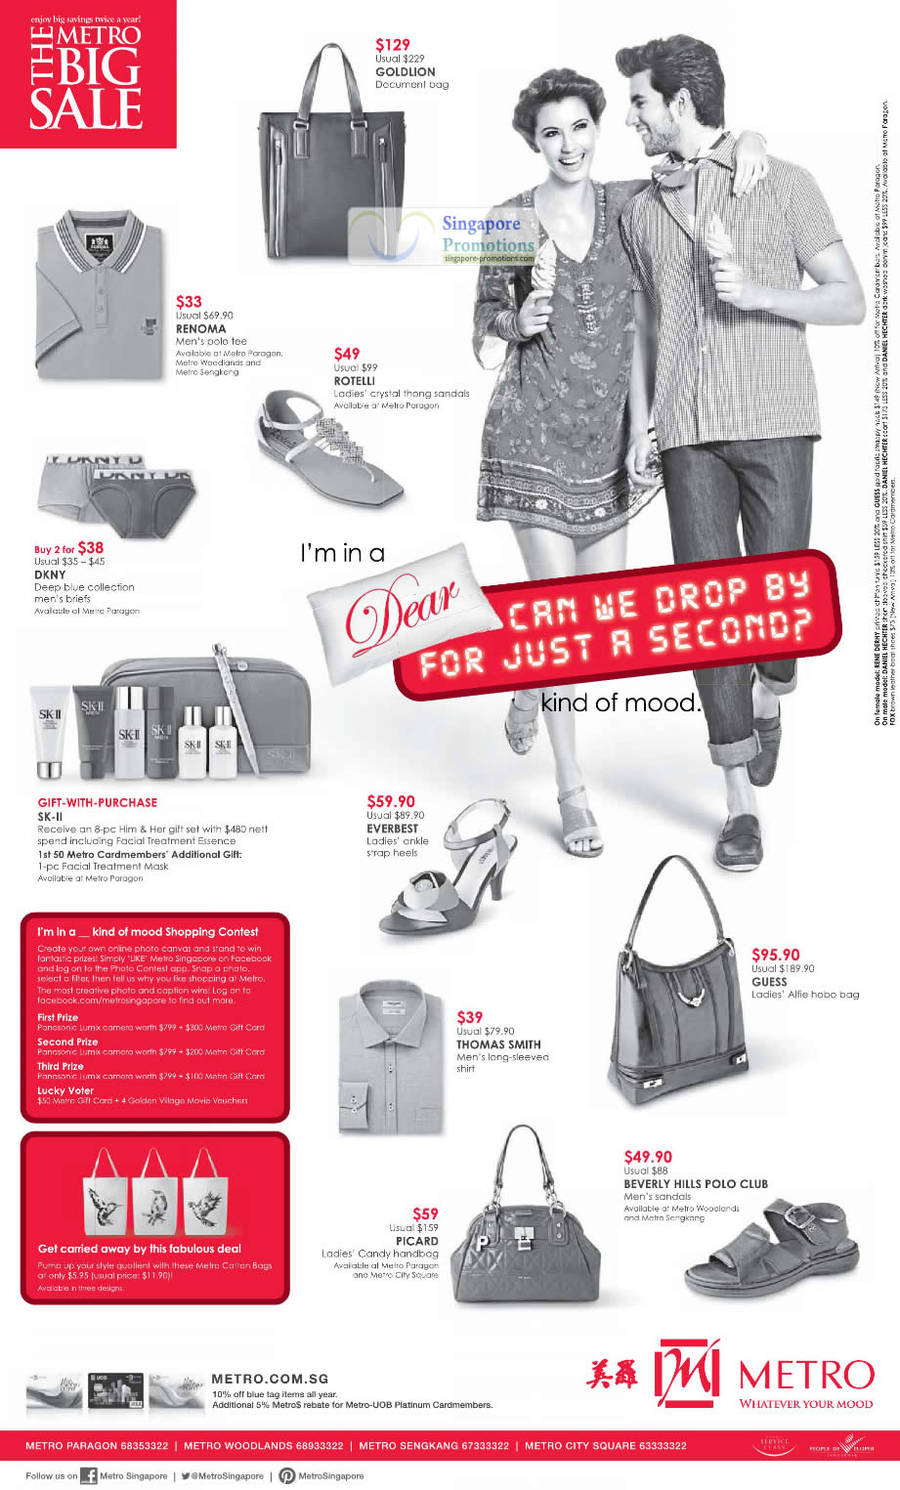 GOLDLION Document bag, RENOMA Men's polo tee, PICARD Ladies' Candy handbag, THOMAS SMITH Men's long-sleeved shirt, GUESS Ladies' Alfie hobo bag, BEVERLY HILLS POLO CLUB Men's sandals, EVERBEST Ladies' ankle strap heels, ROTELLI Ladies' crystal thong sandals